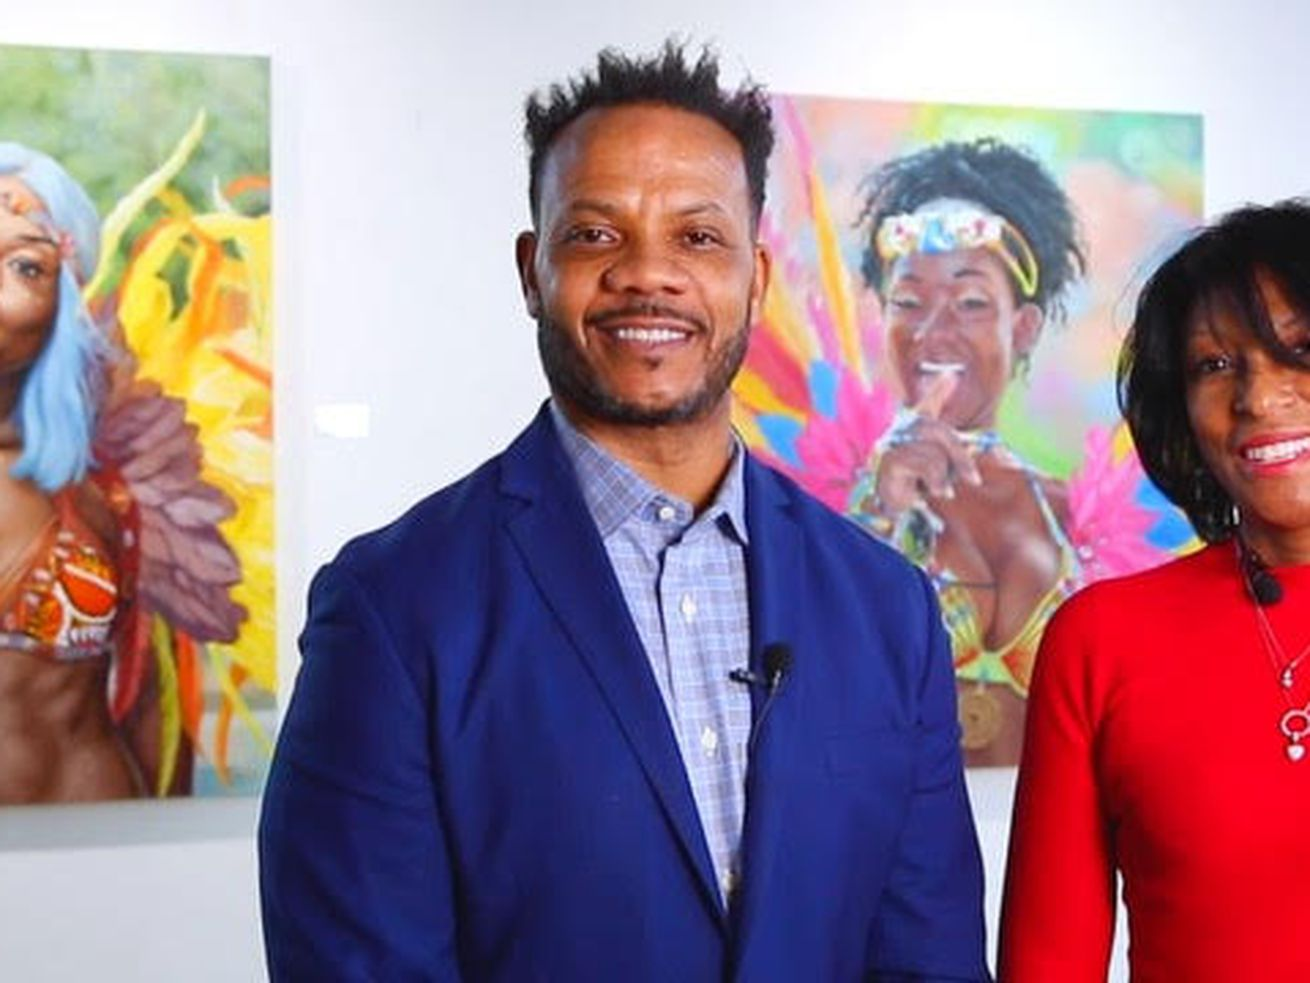 Andre and Frances Guichard are owners of the 16-year-old Gallery Guichard in Bronzeville, which has seen corporate efforts toward diversity, equity and inclusion expand to art in the post-George Floyd era. The couple, which also owns the seven-year-old Bronzeville Artist Lofts, has been on a mission to expose patrons to multicultural artists and art in the African Diaspora, along with four other galleries in the Bronzeville Art District.